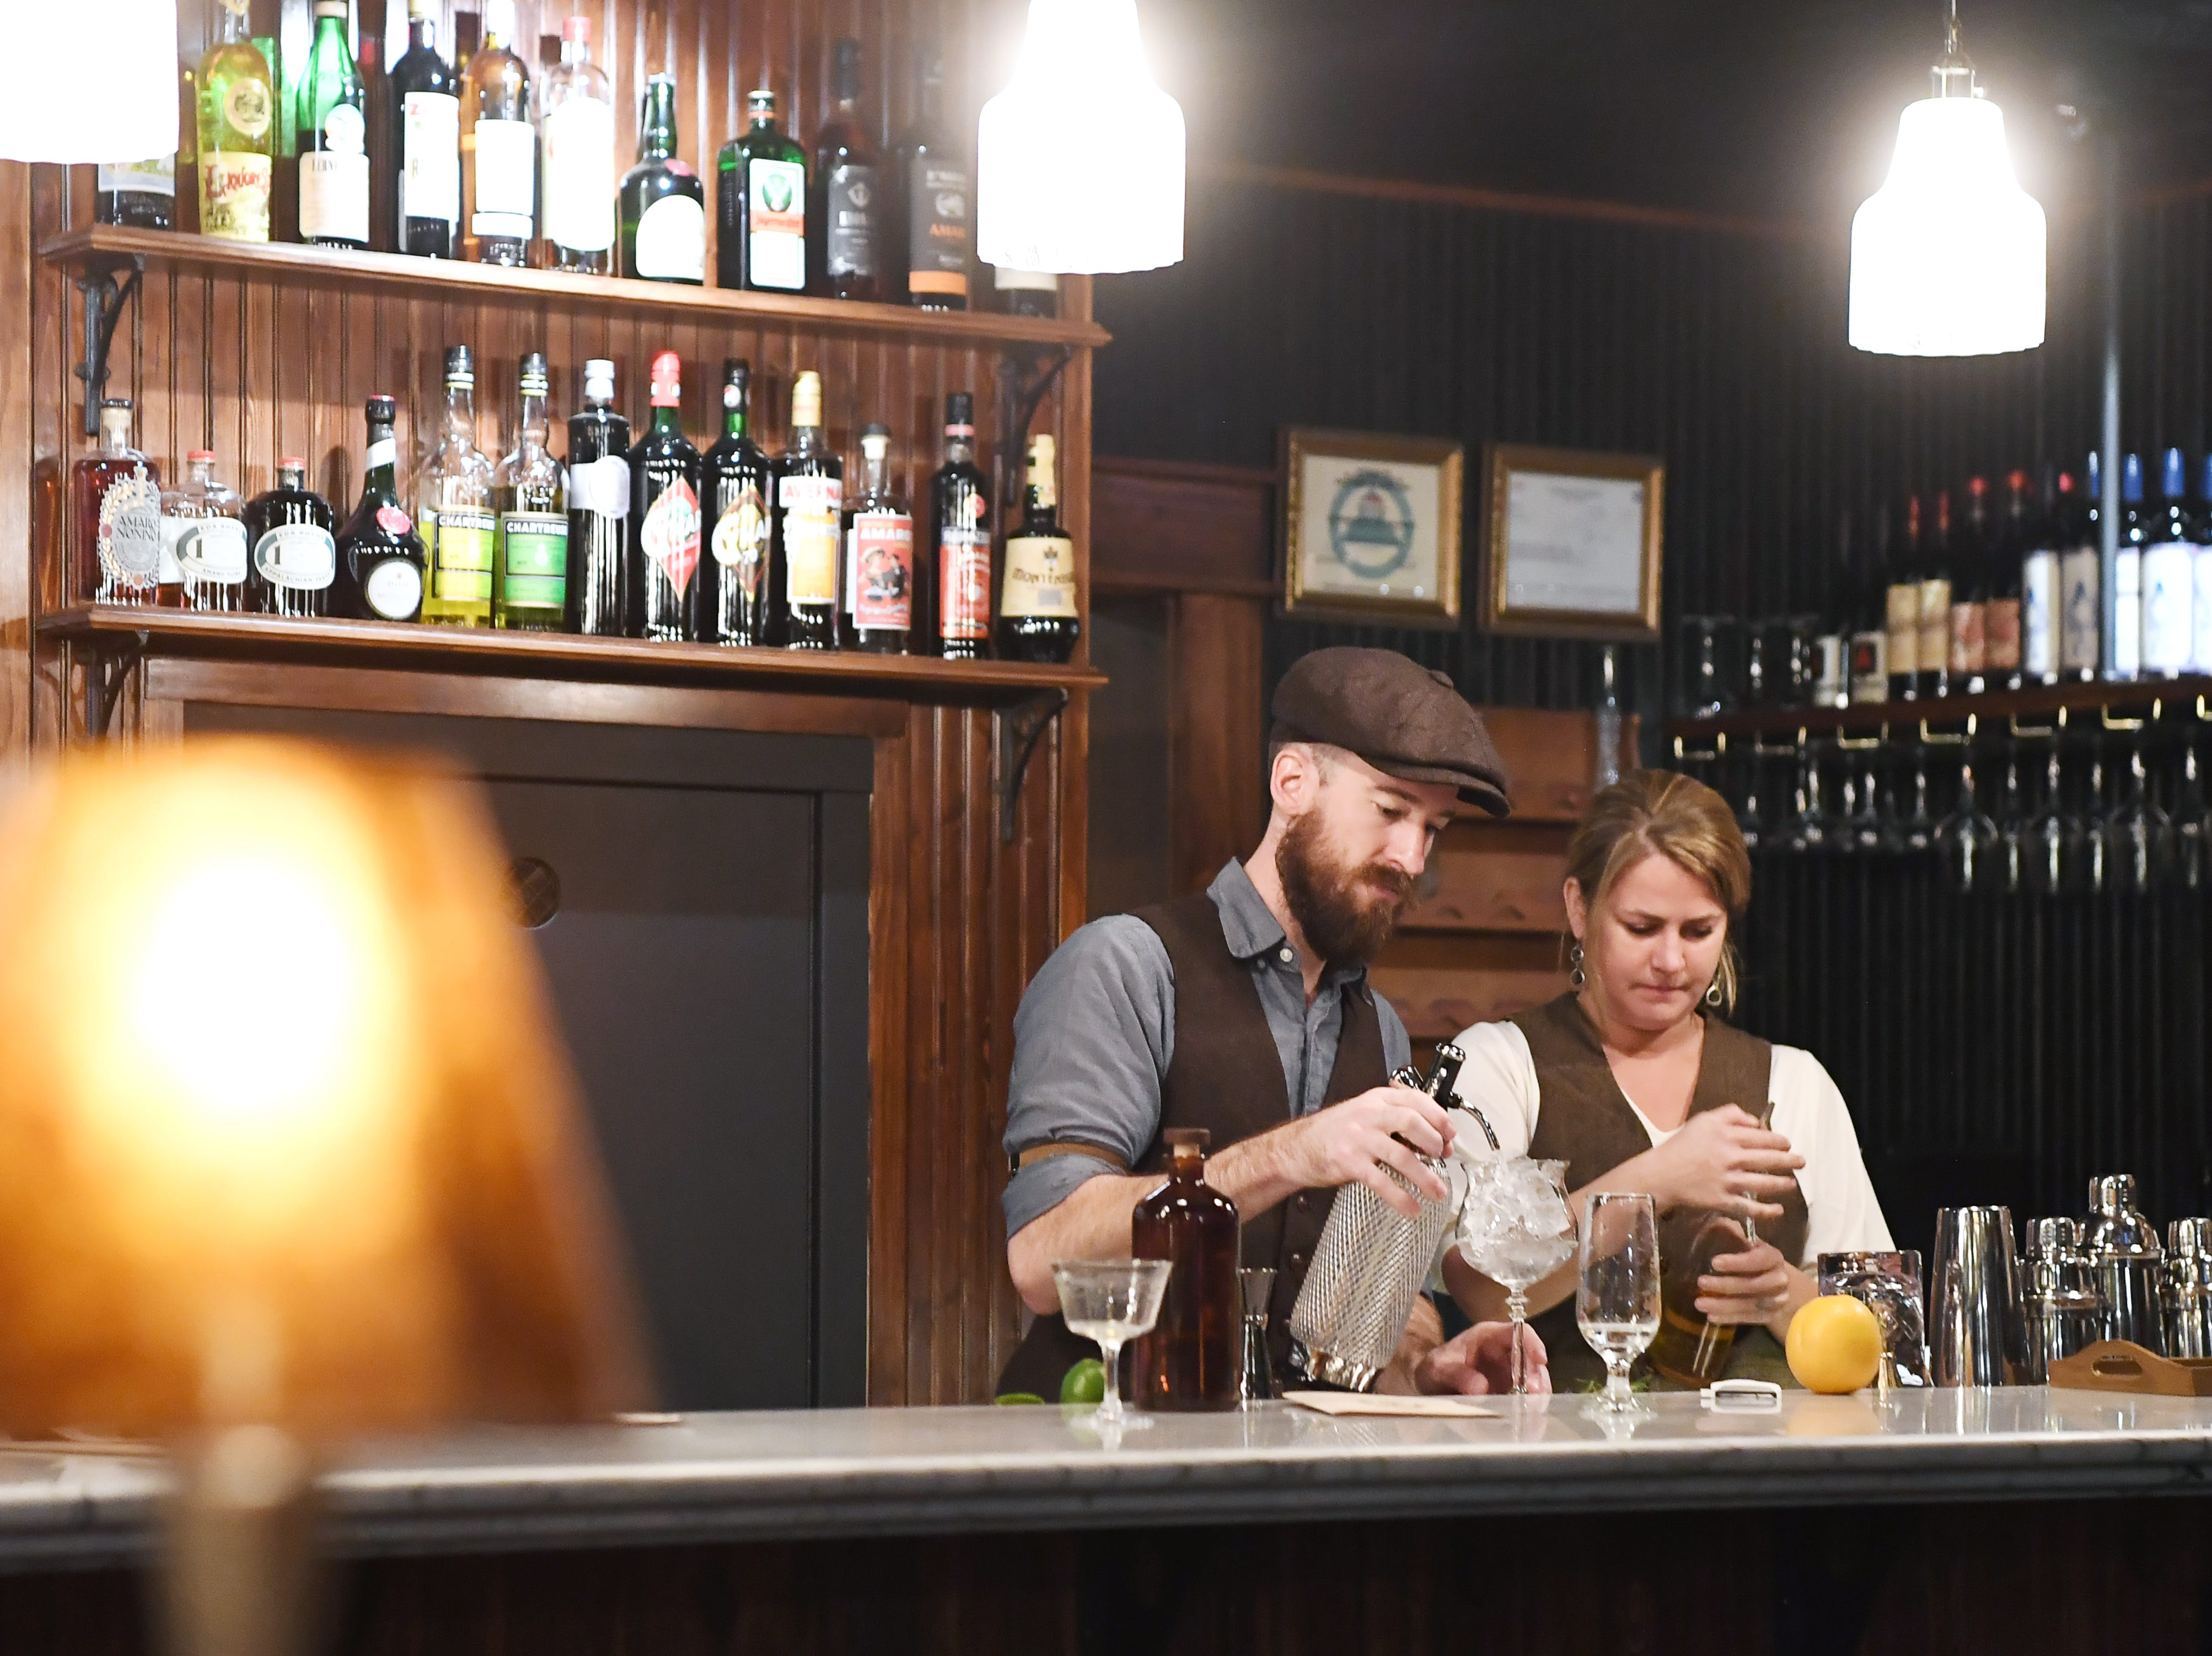 Antidote's general manager, Jonny Burritt, and bar manager Andrea Seng mix cocktails Nov. 28, 2018.